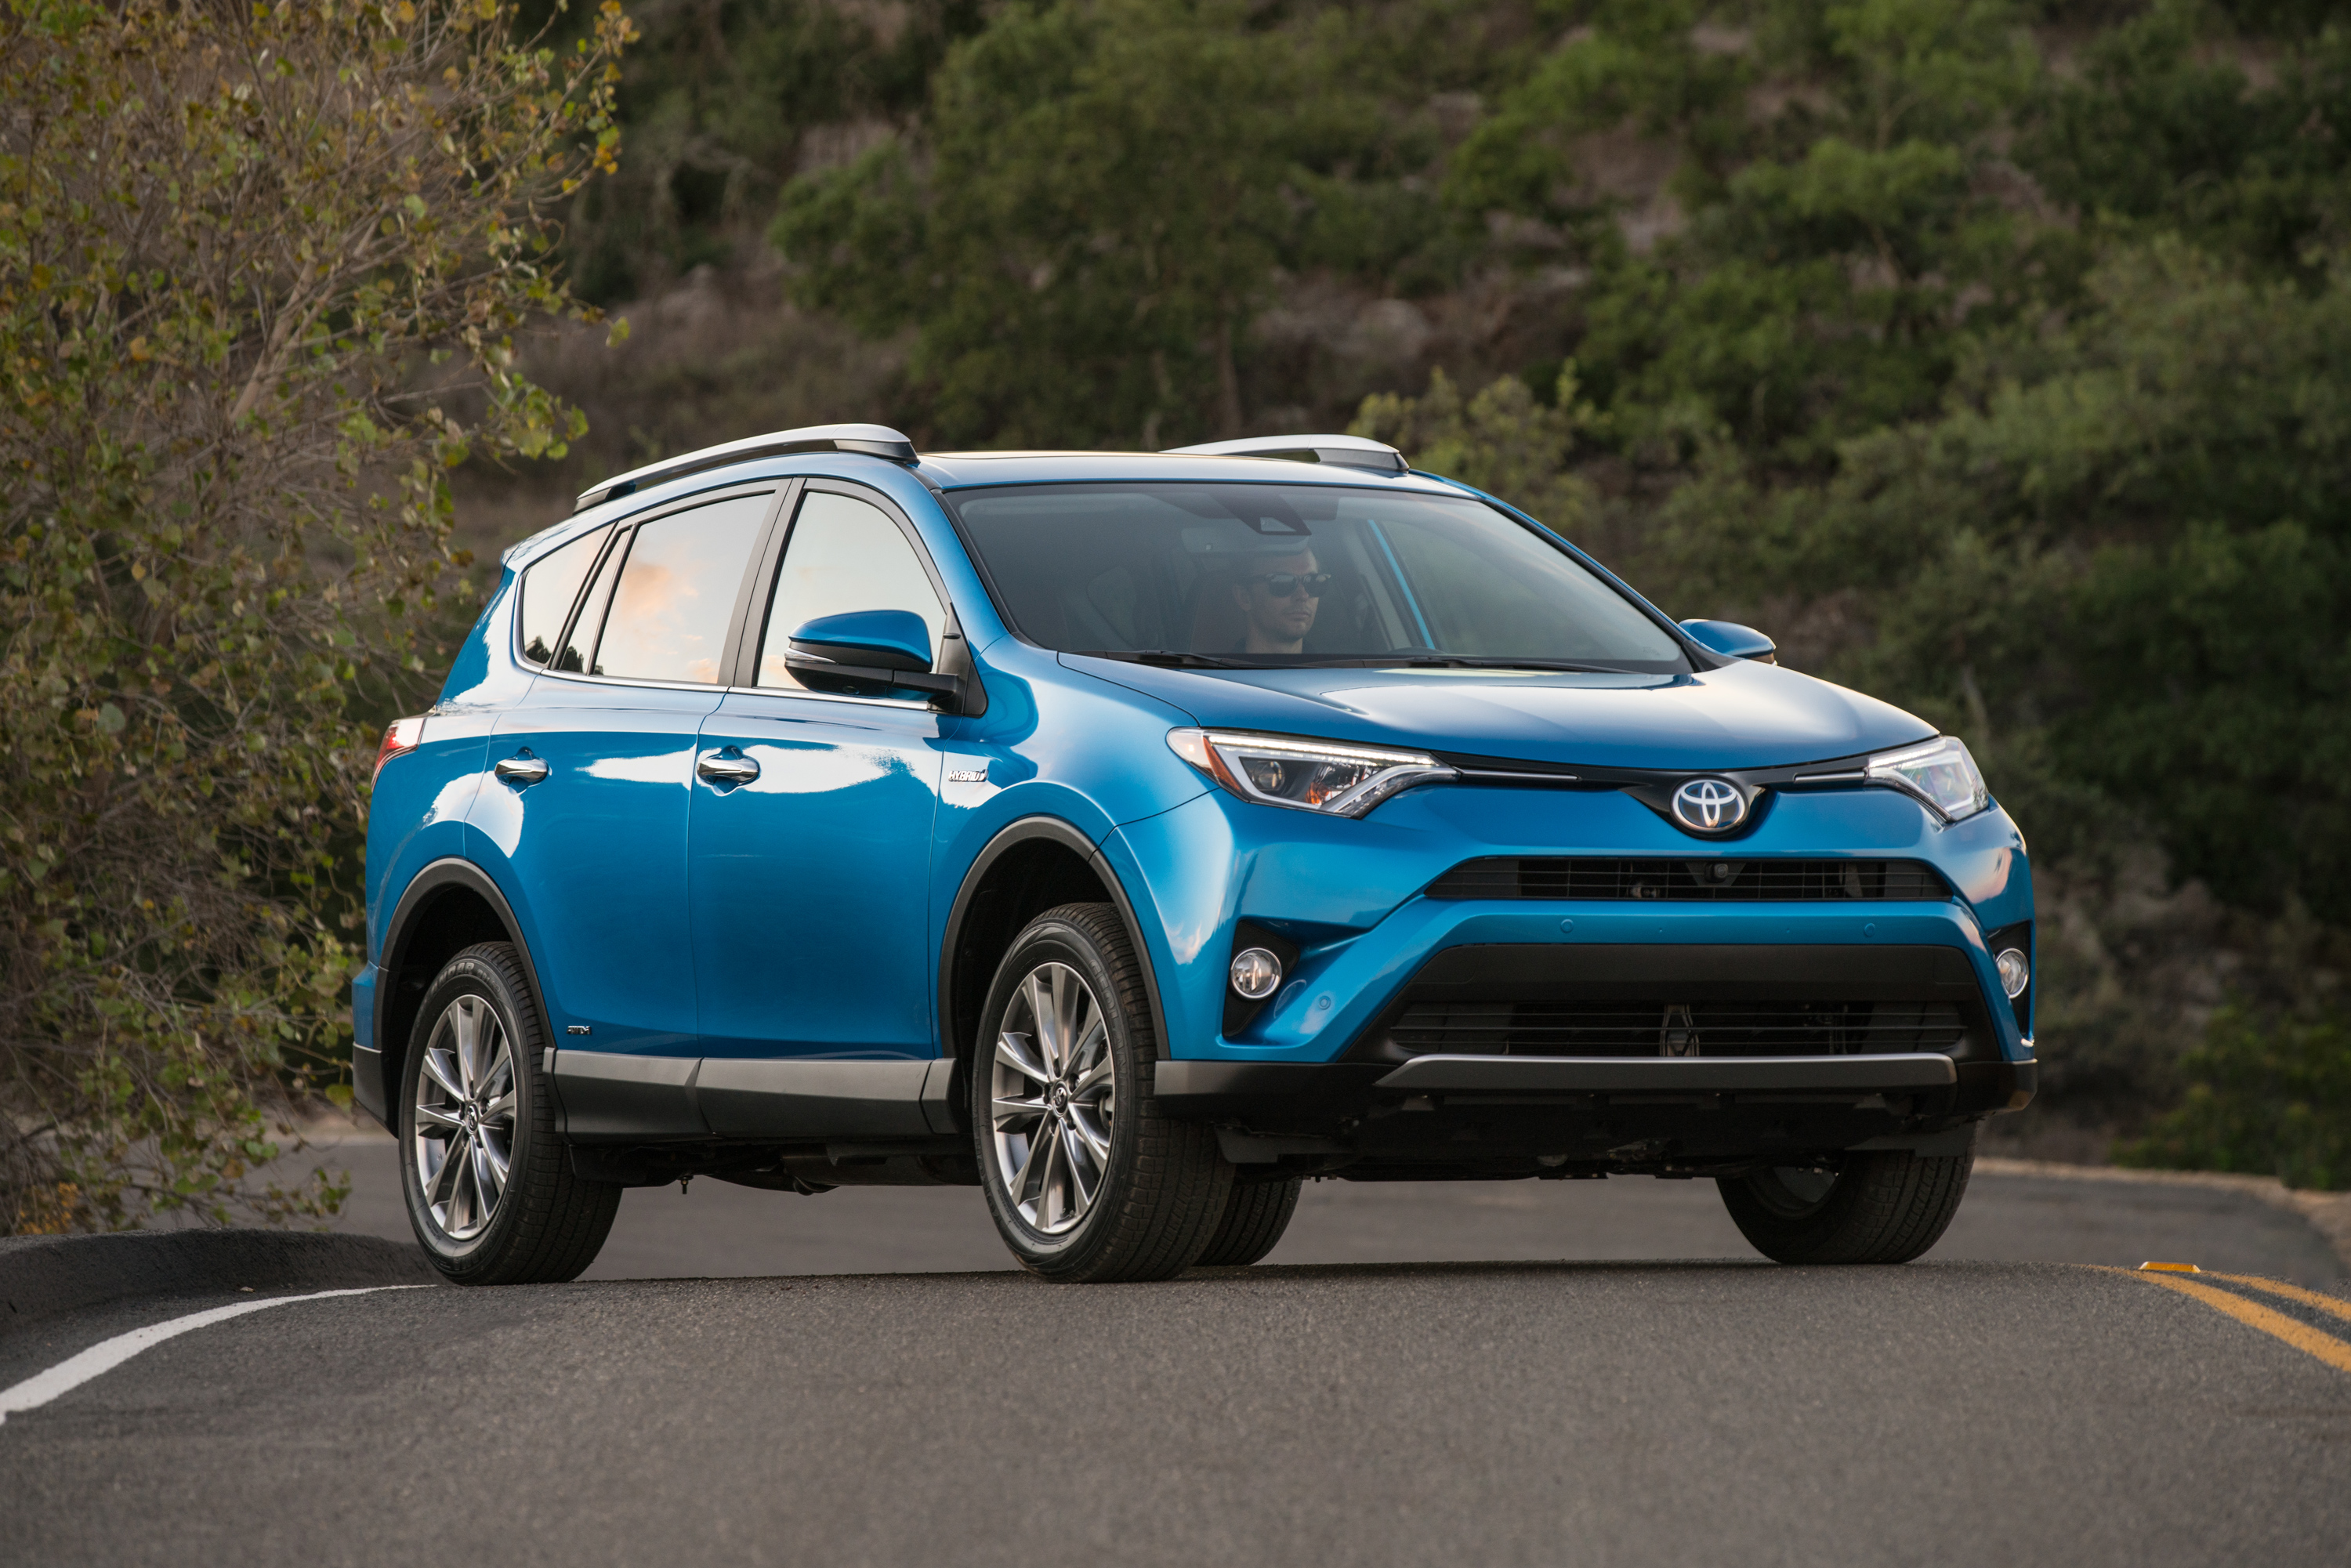 2017 toyota rav4 hybrid at hometown toyota near boise. Black Bedroom Furniture Sets. Home Design Ideas